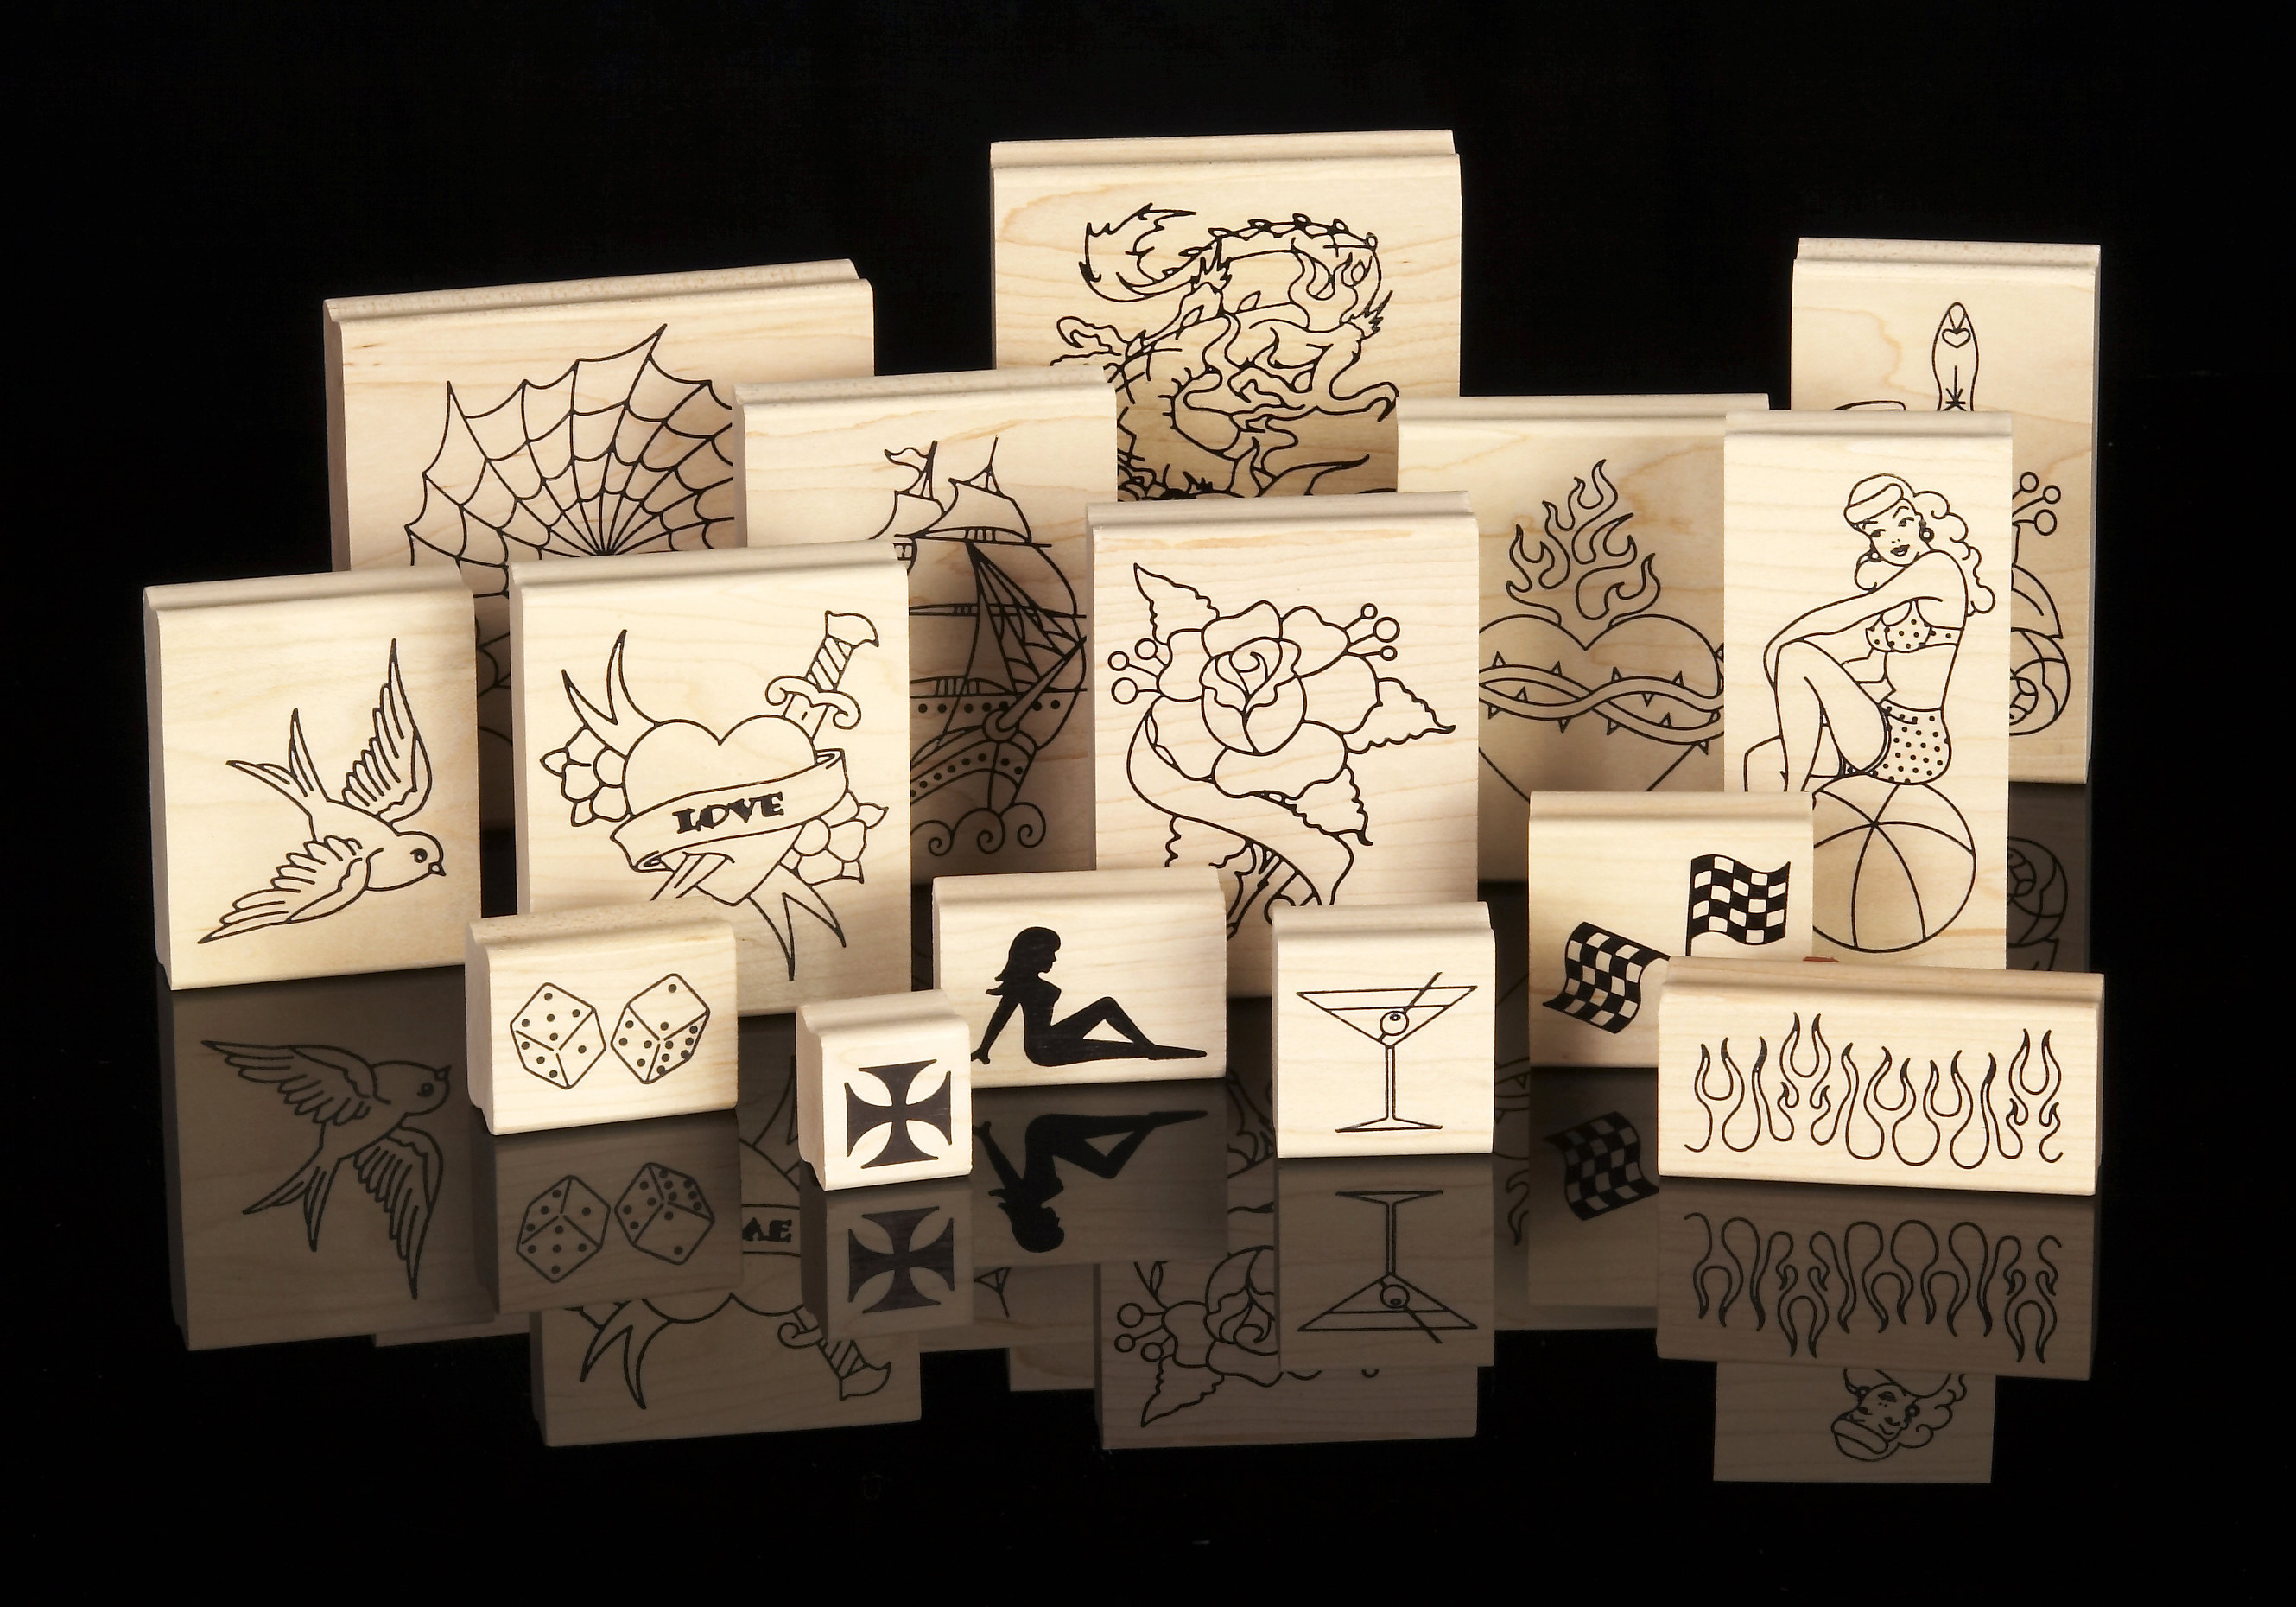 Rubber stamps arts and crafts - Asta Arts Rubber Stampsan Assortment Of Asta Arts Rubber Stamps